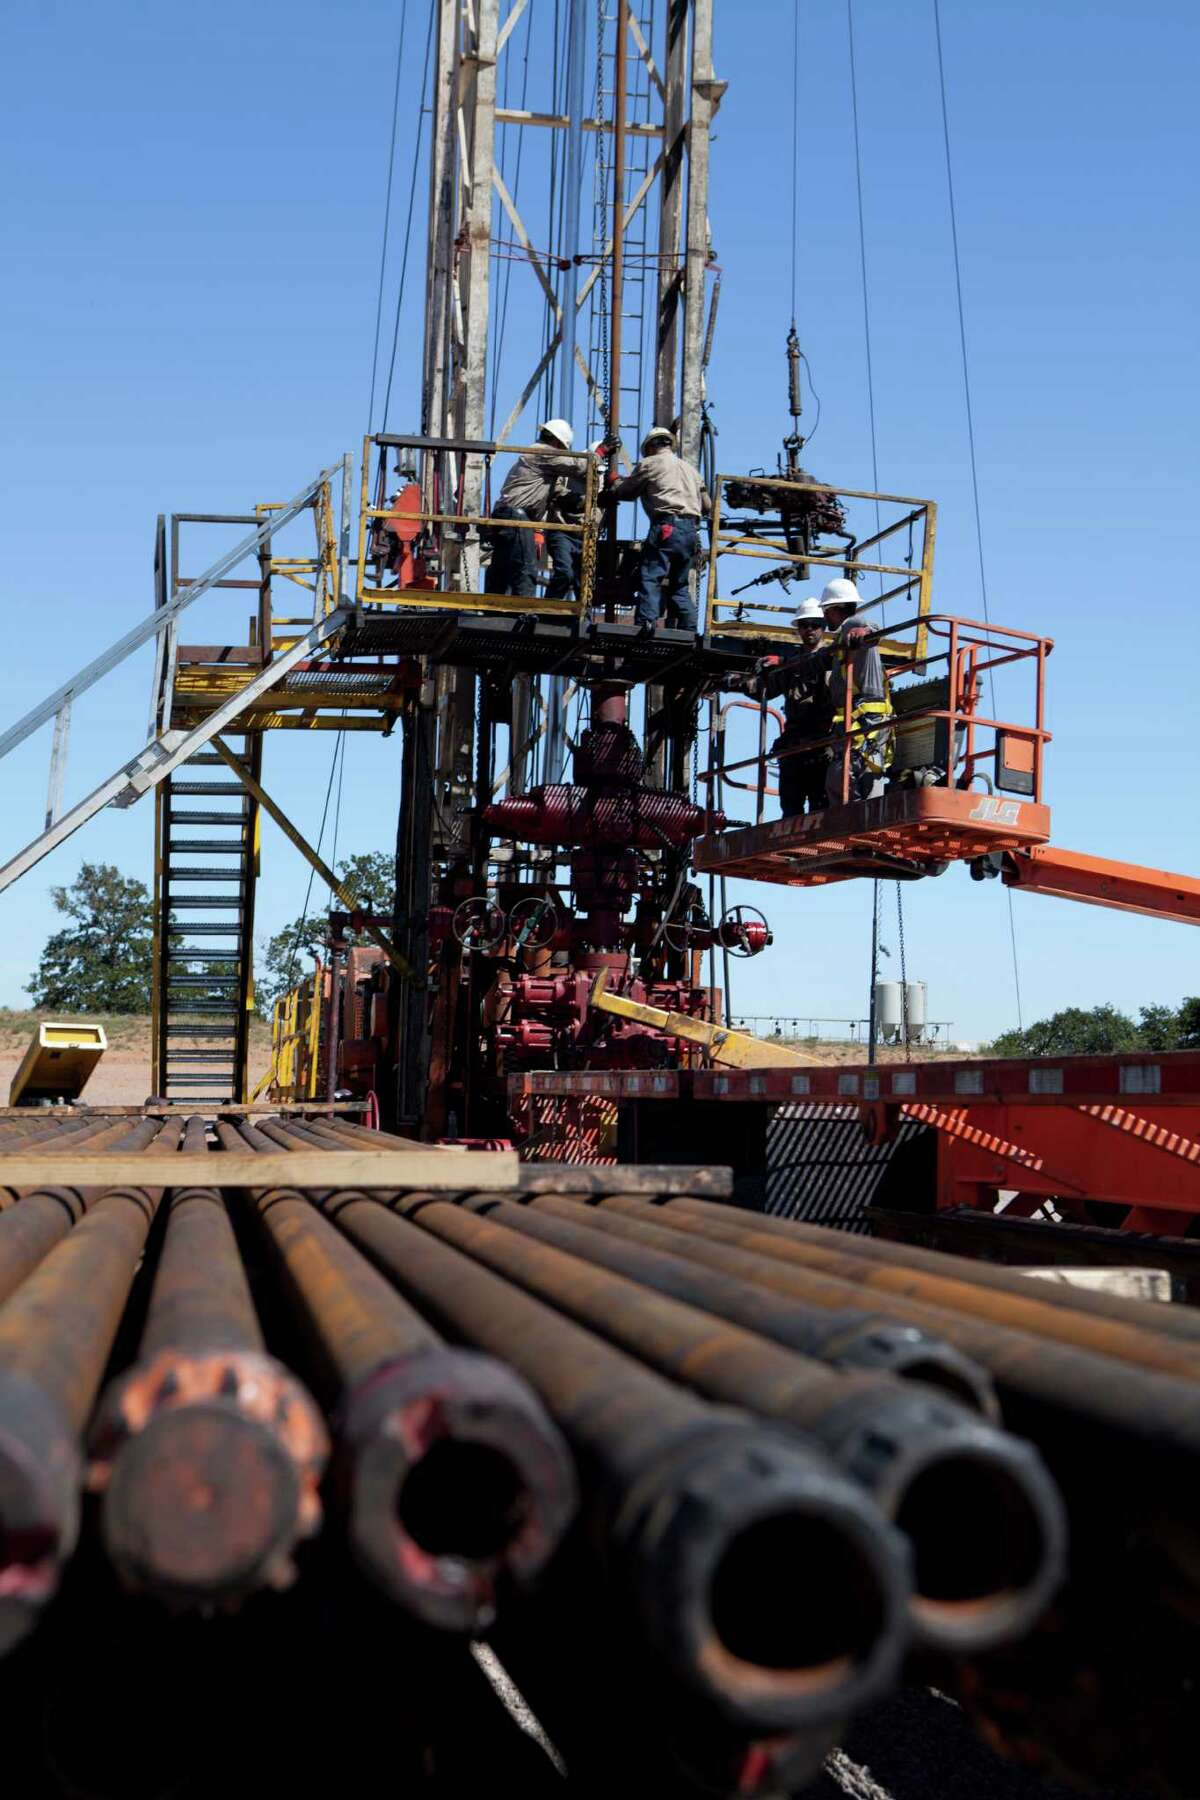 In this 2013 file photo, a drill crew adds new sections of pipe to a string as they drill deeper into a Newfield Exploration well. As the well is drilled, it is lined with steel casing to prevent the hole from collapsing and fluids and gas from escaping. Central Oklahoma, Newfield Exploration Company, Workover rig, Basin Energy, Casados 4 H 21X Well, Stephens County, OK. 2.75 inch pipe. Workover rig is the workhorse, as it keeps working before and after the well is drilled. Preparing a well for production. Performing a variety of functions to enhance well performance.